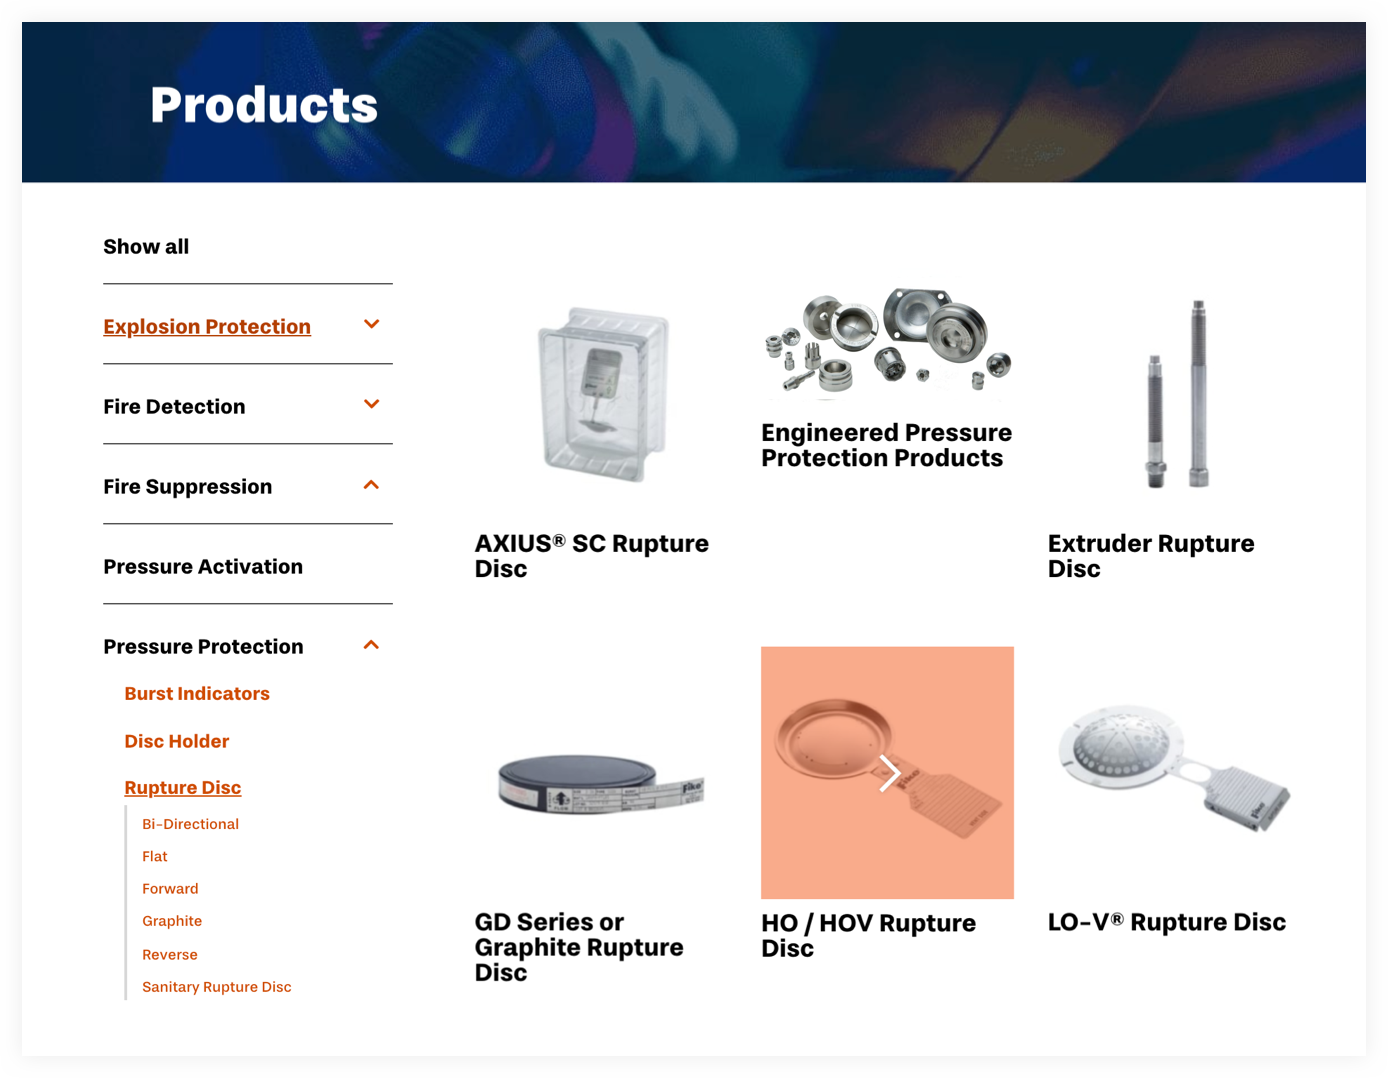 Fike's digital product catalog